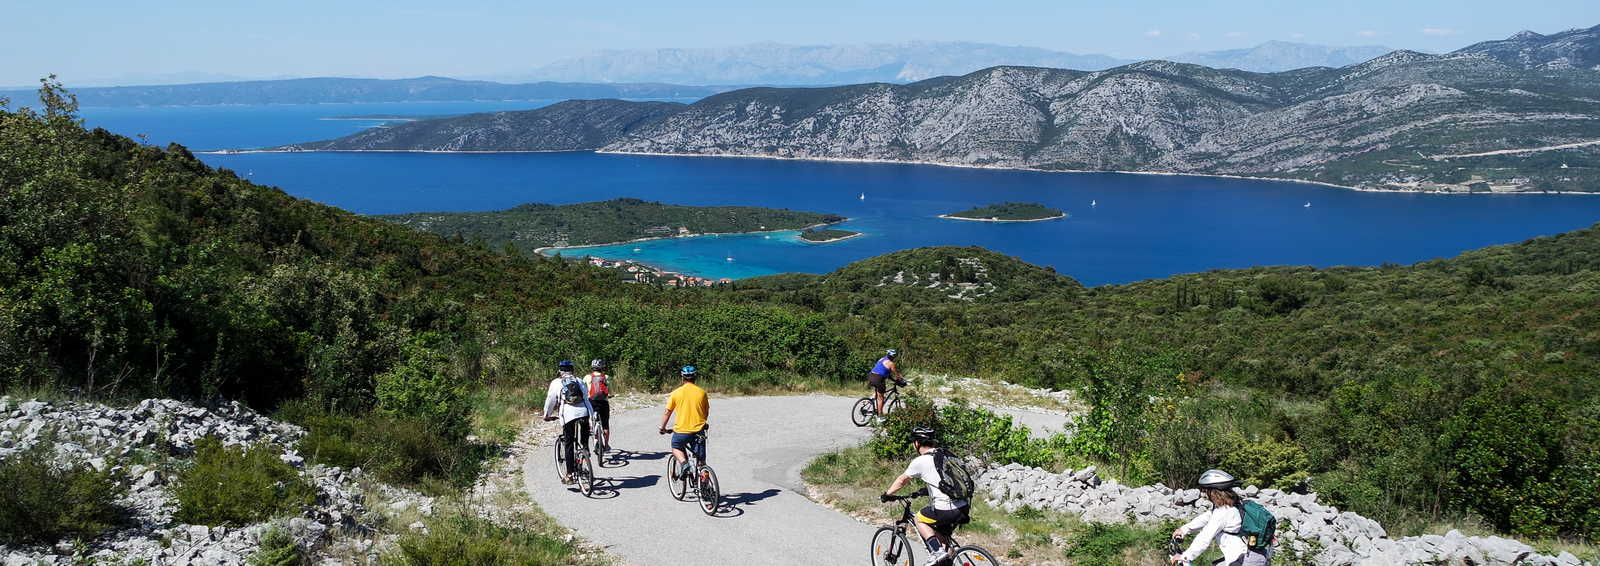 Cycling in Korcula, Croatia